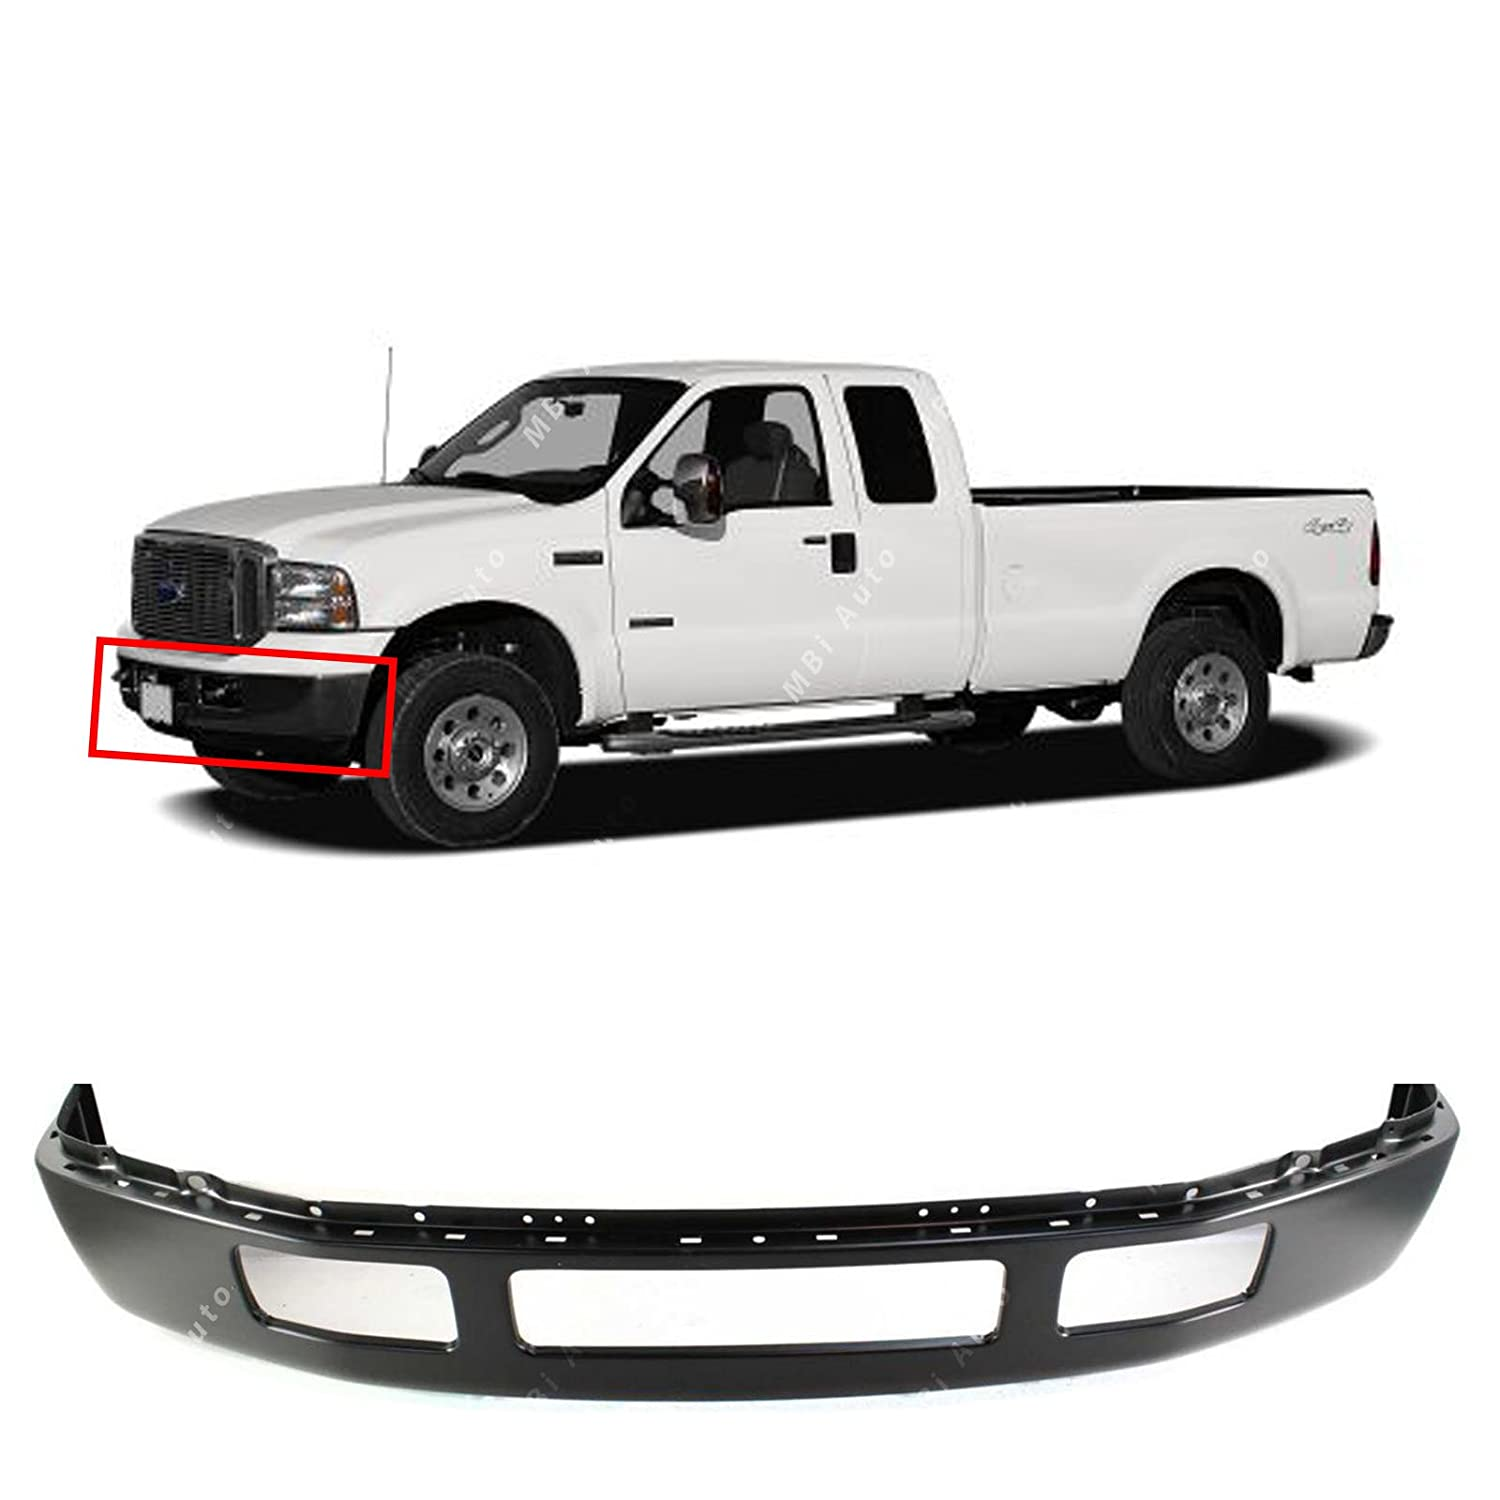 2006 Ford F250 Front Bumper >> Amazon Com Mbi Auto Primered Steel Front Bumper Facebar For 2005